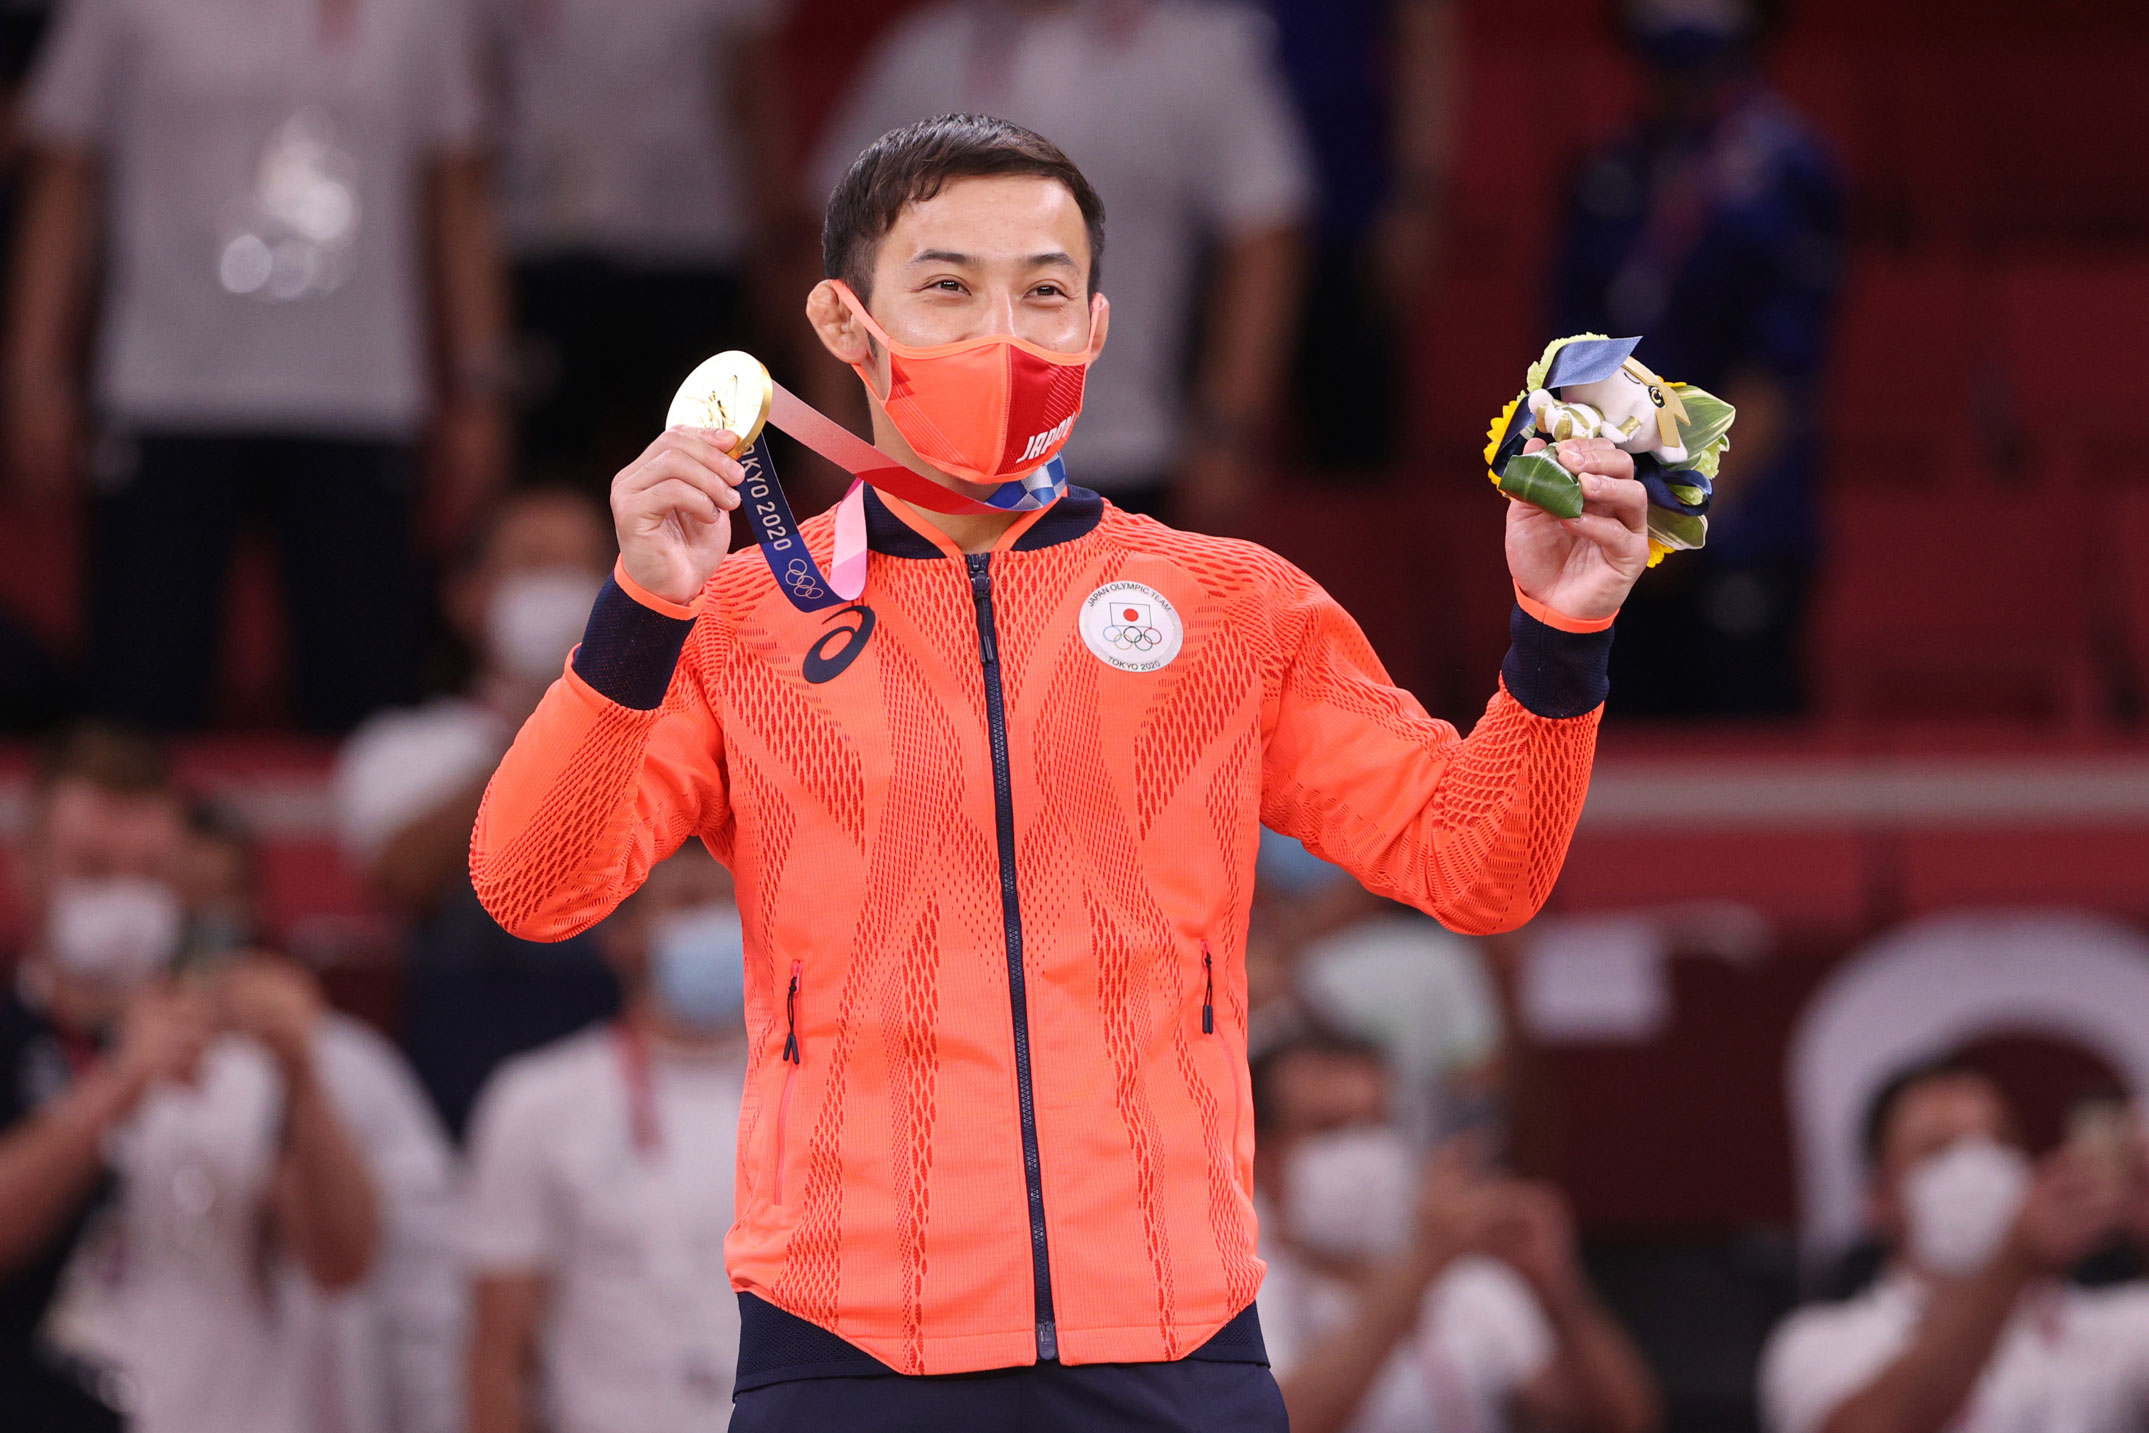 Japan's Naohisa Takato poses with the gold medal for the Men's Judo 60kg Final on July 24.